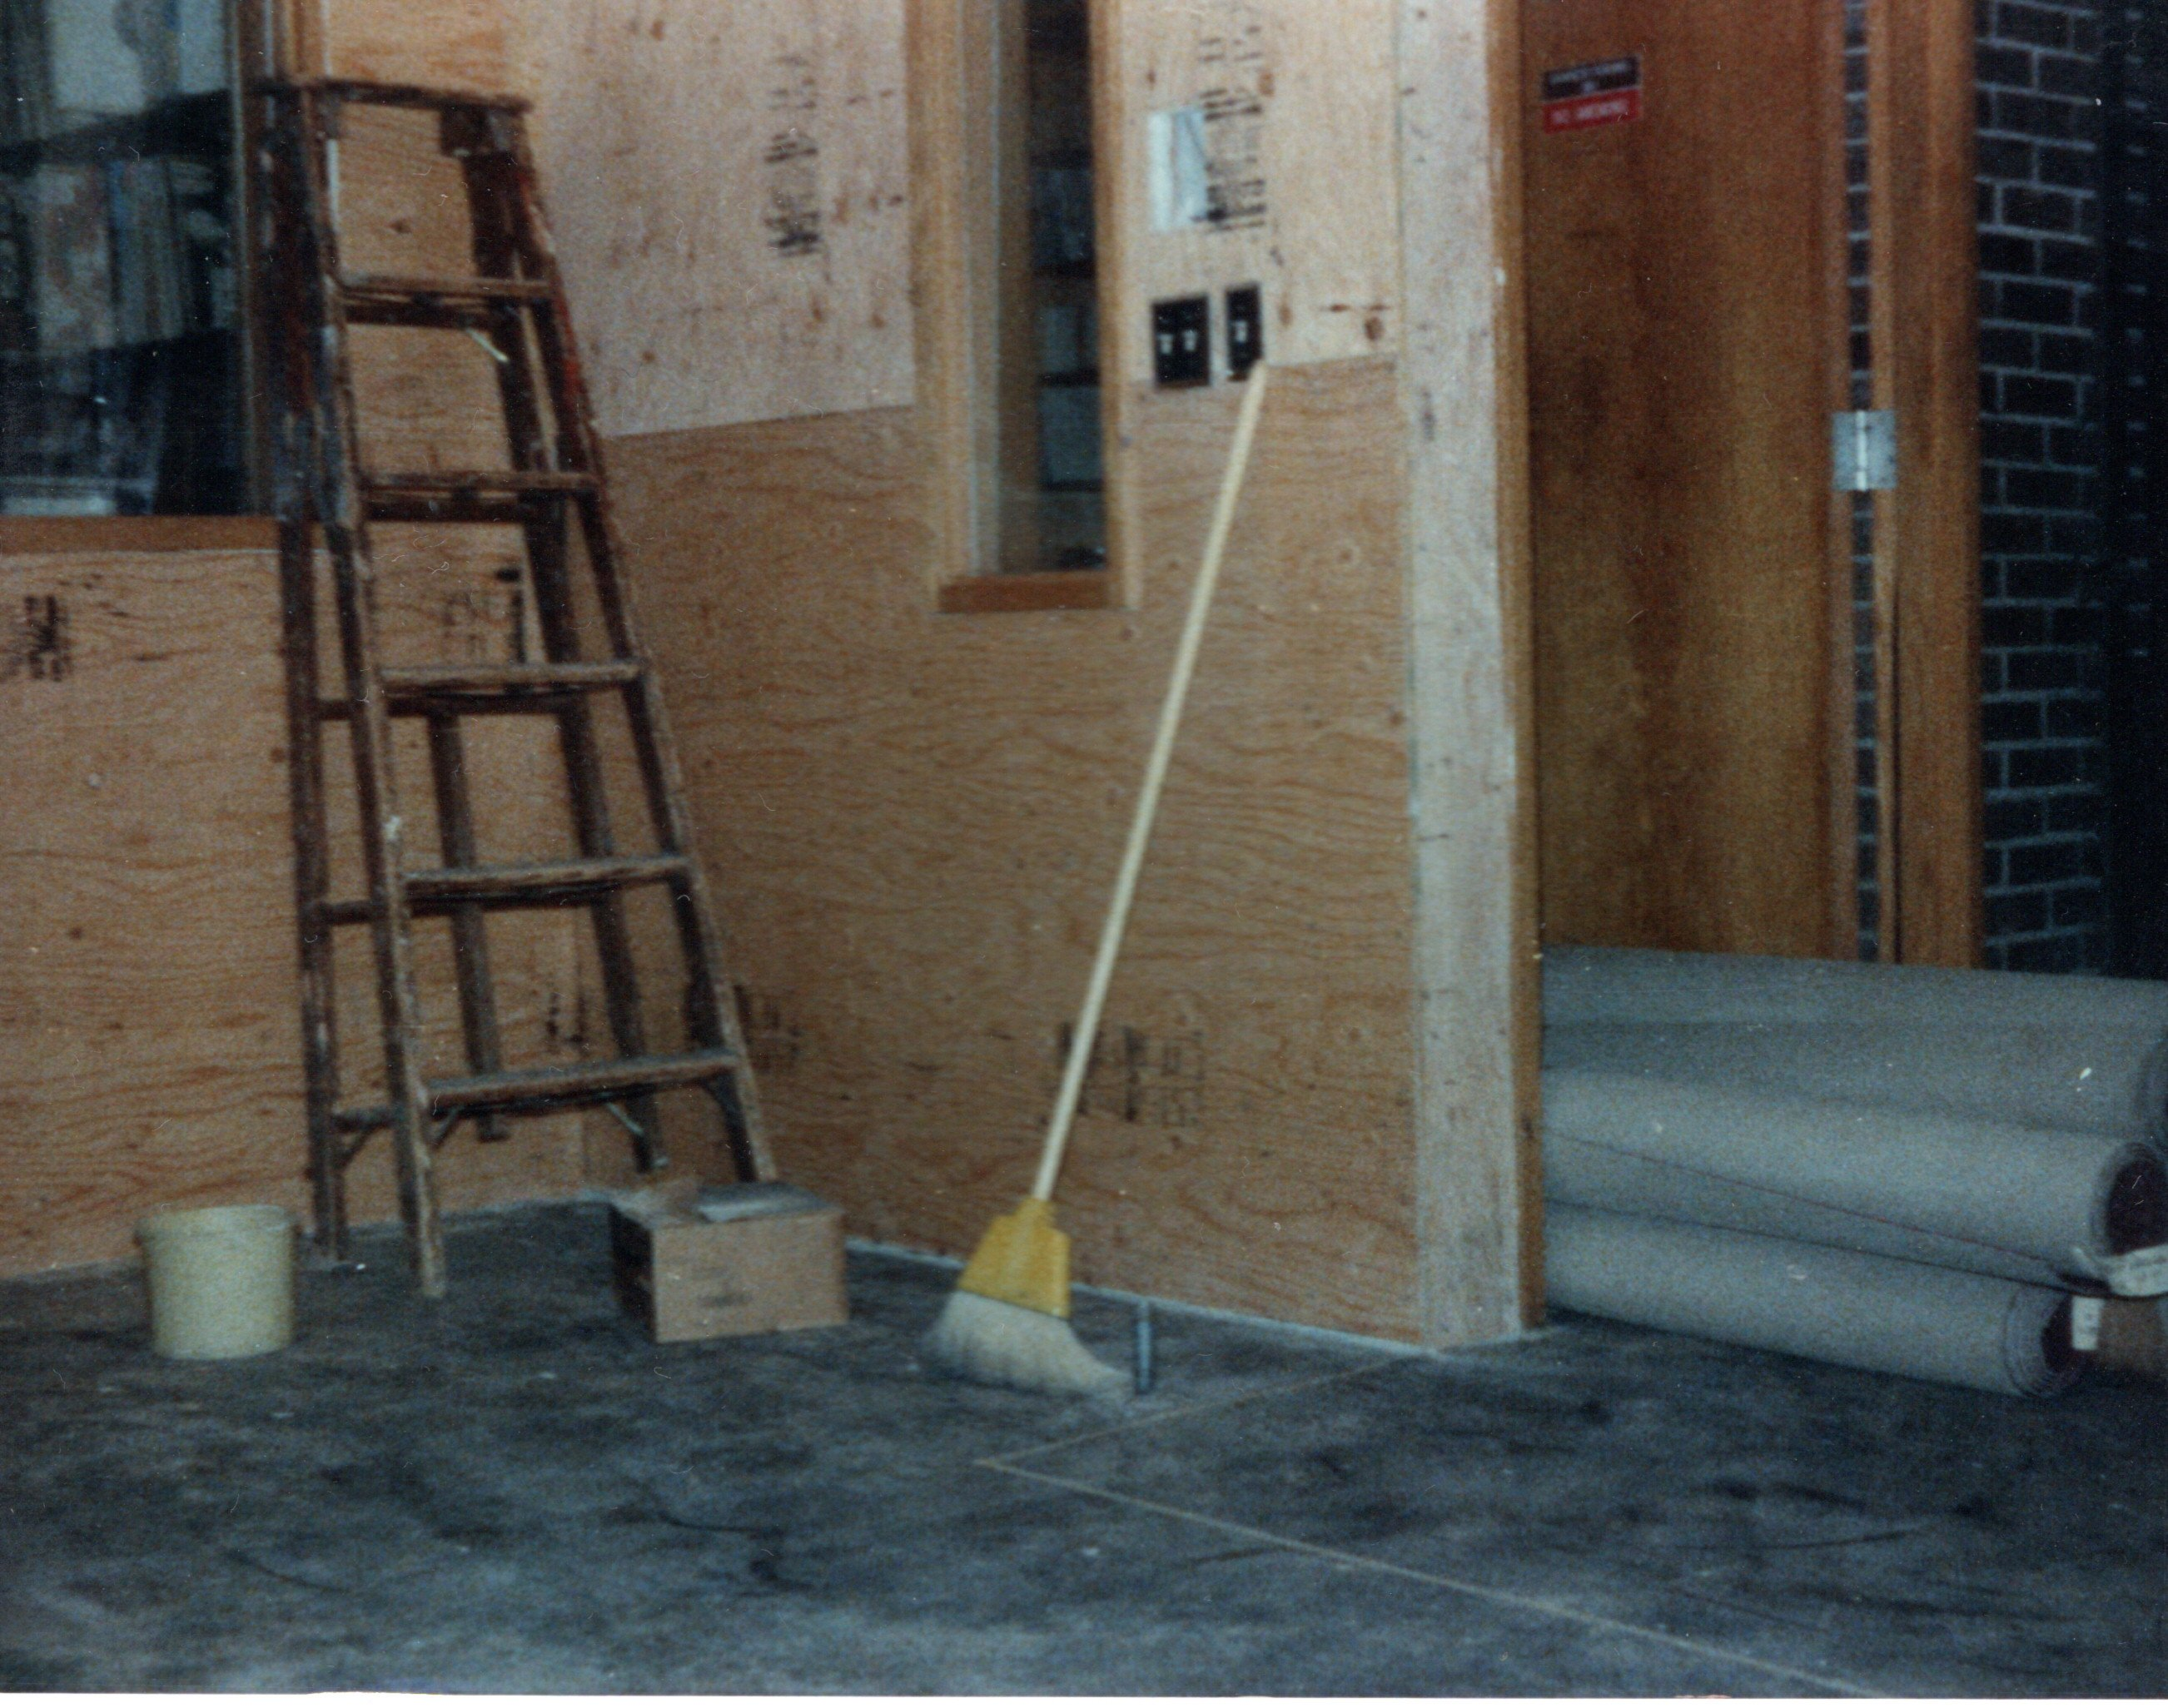 1985-Production Rebuild - The room empty with the new walls